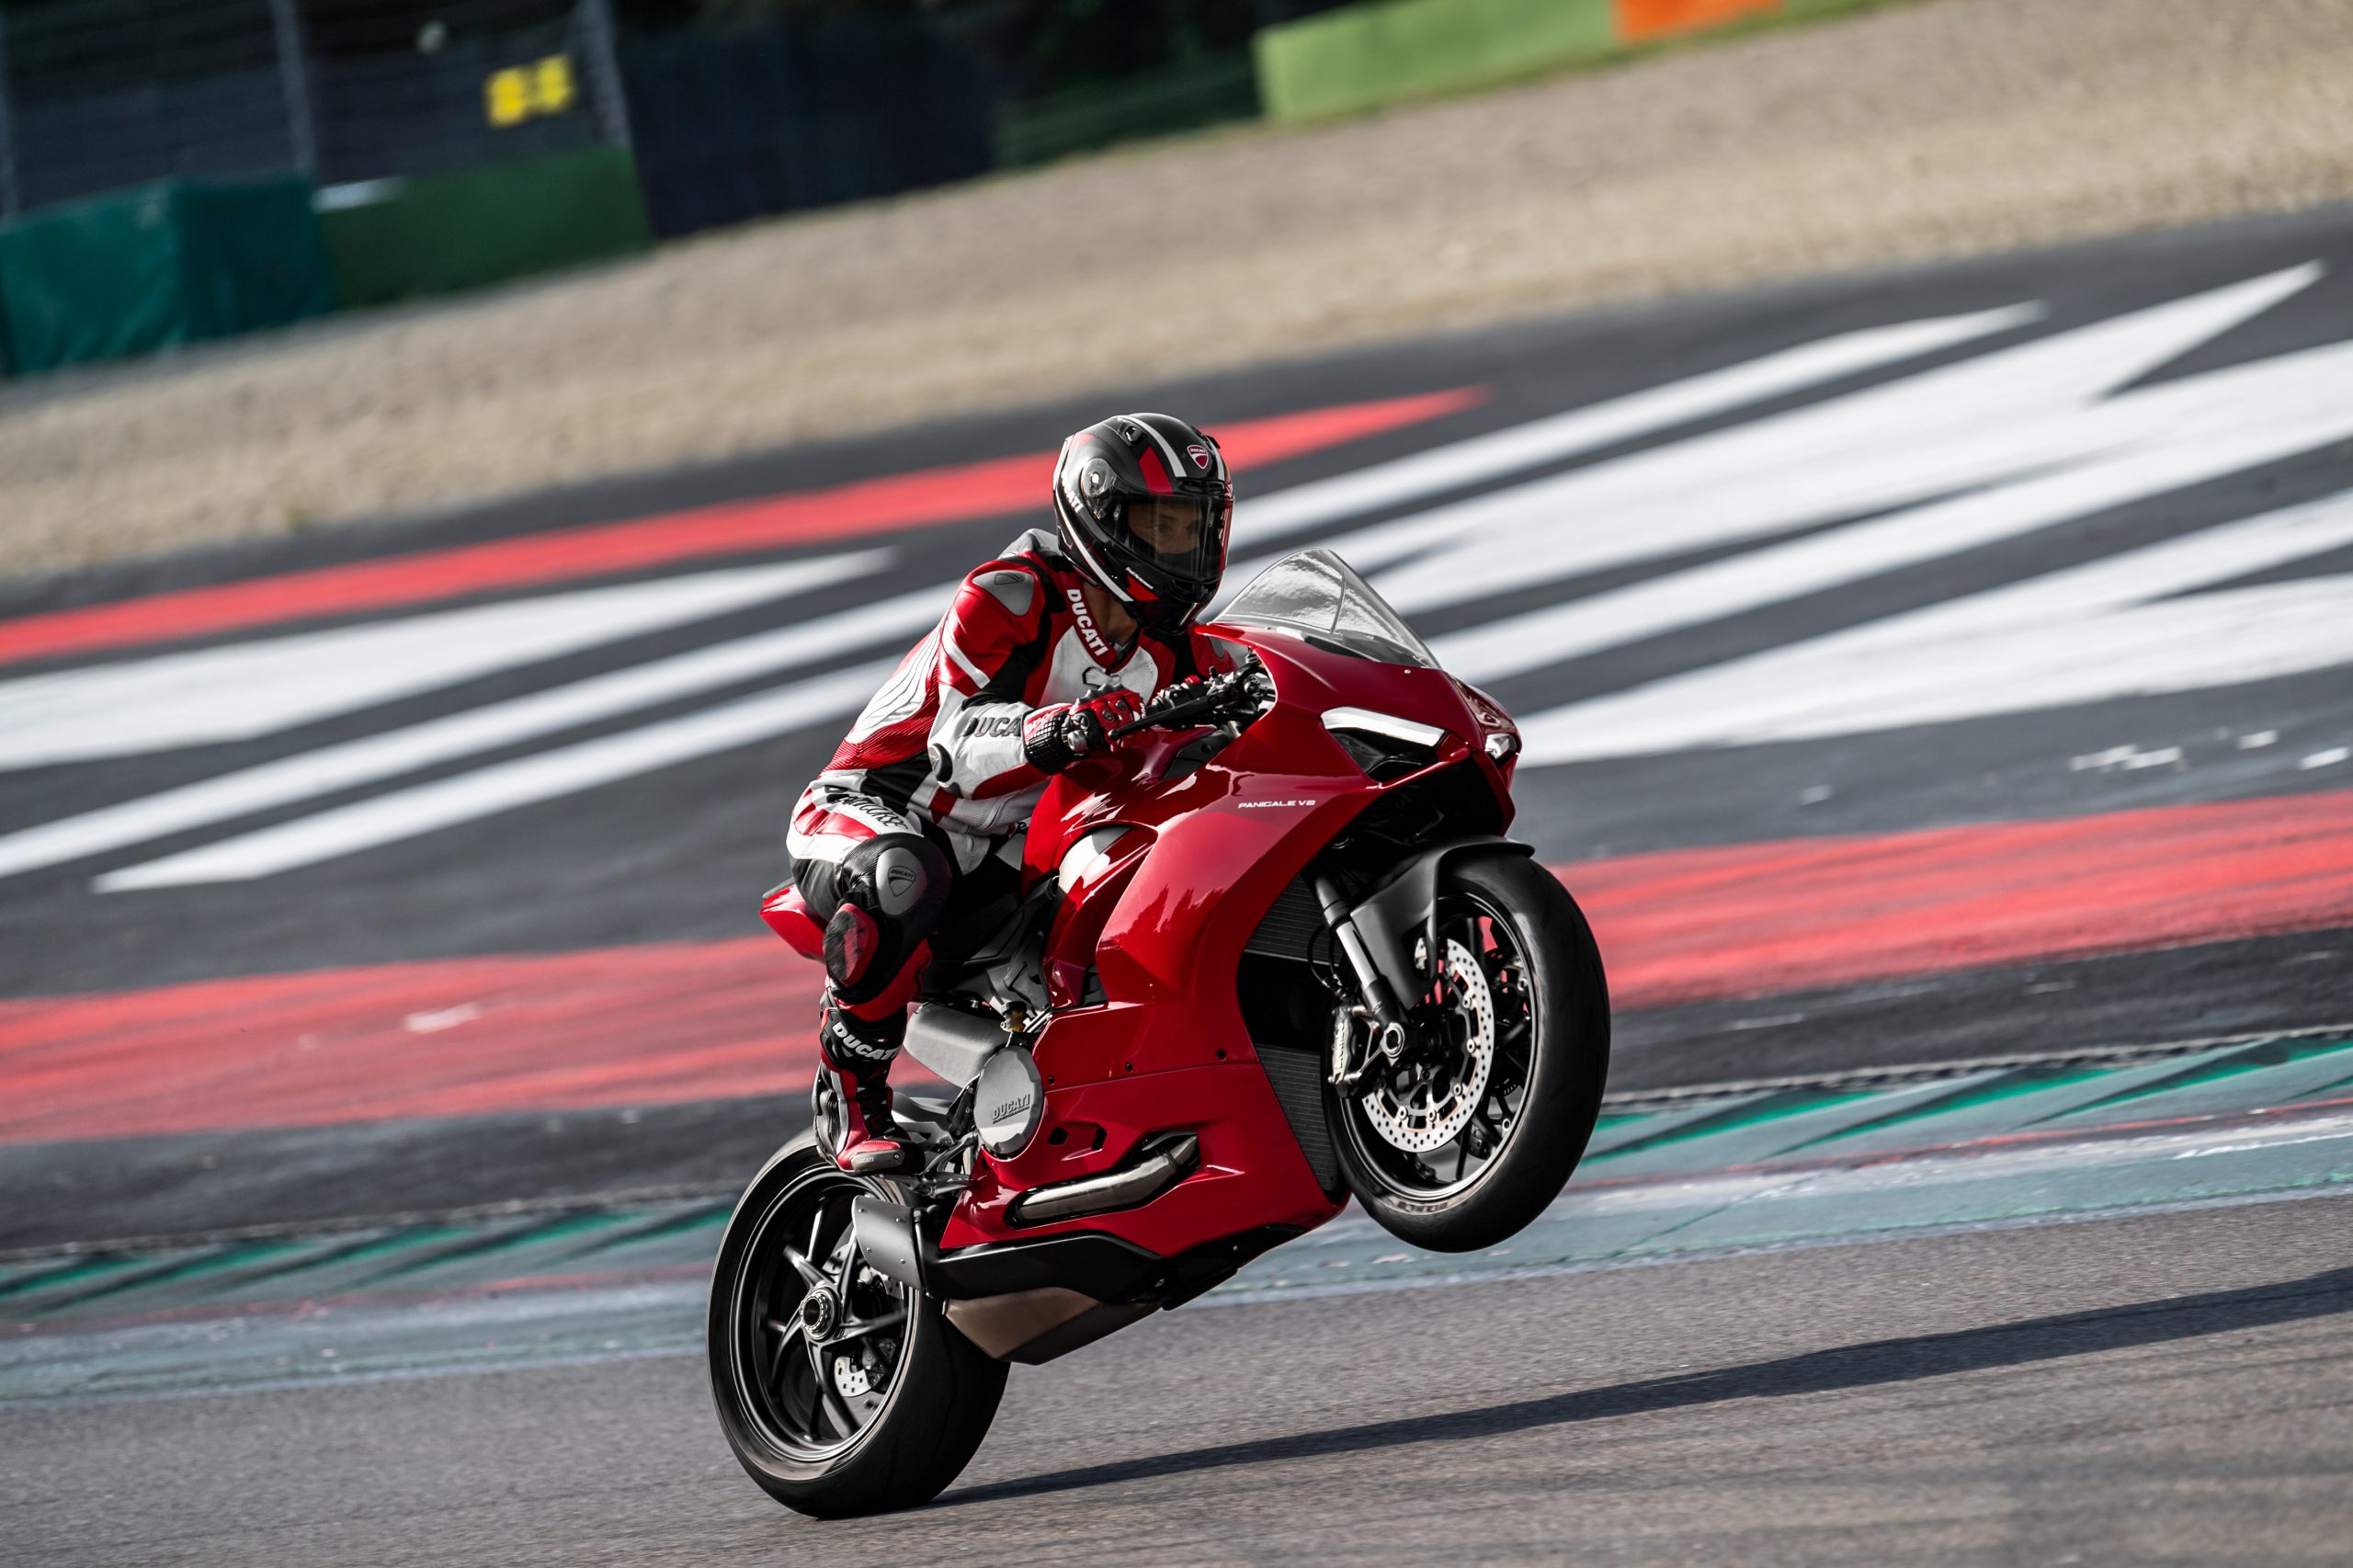 DUCATI_PANIGALE V2_AMBIENCE_22_UC101512_High